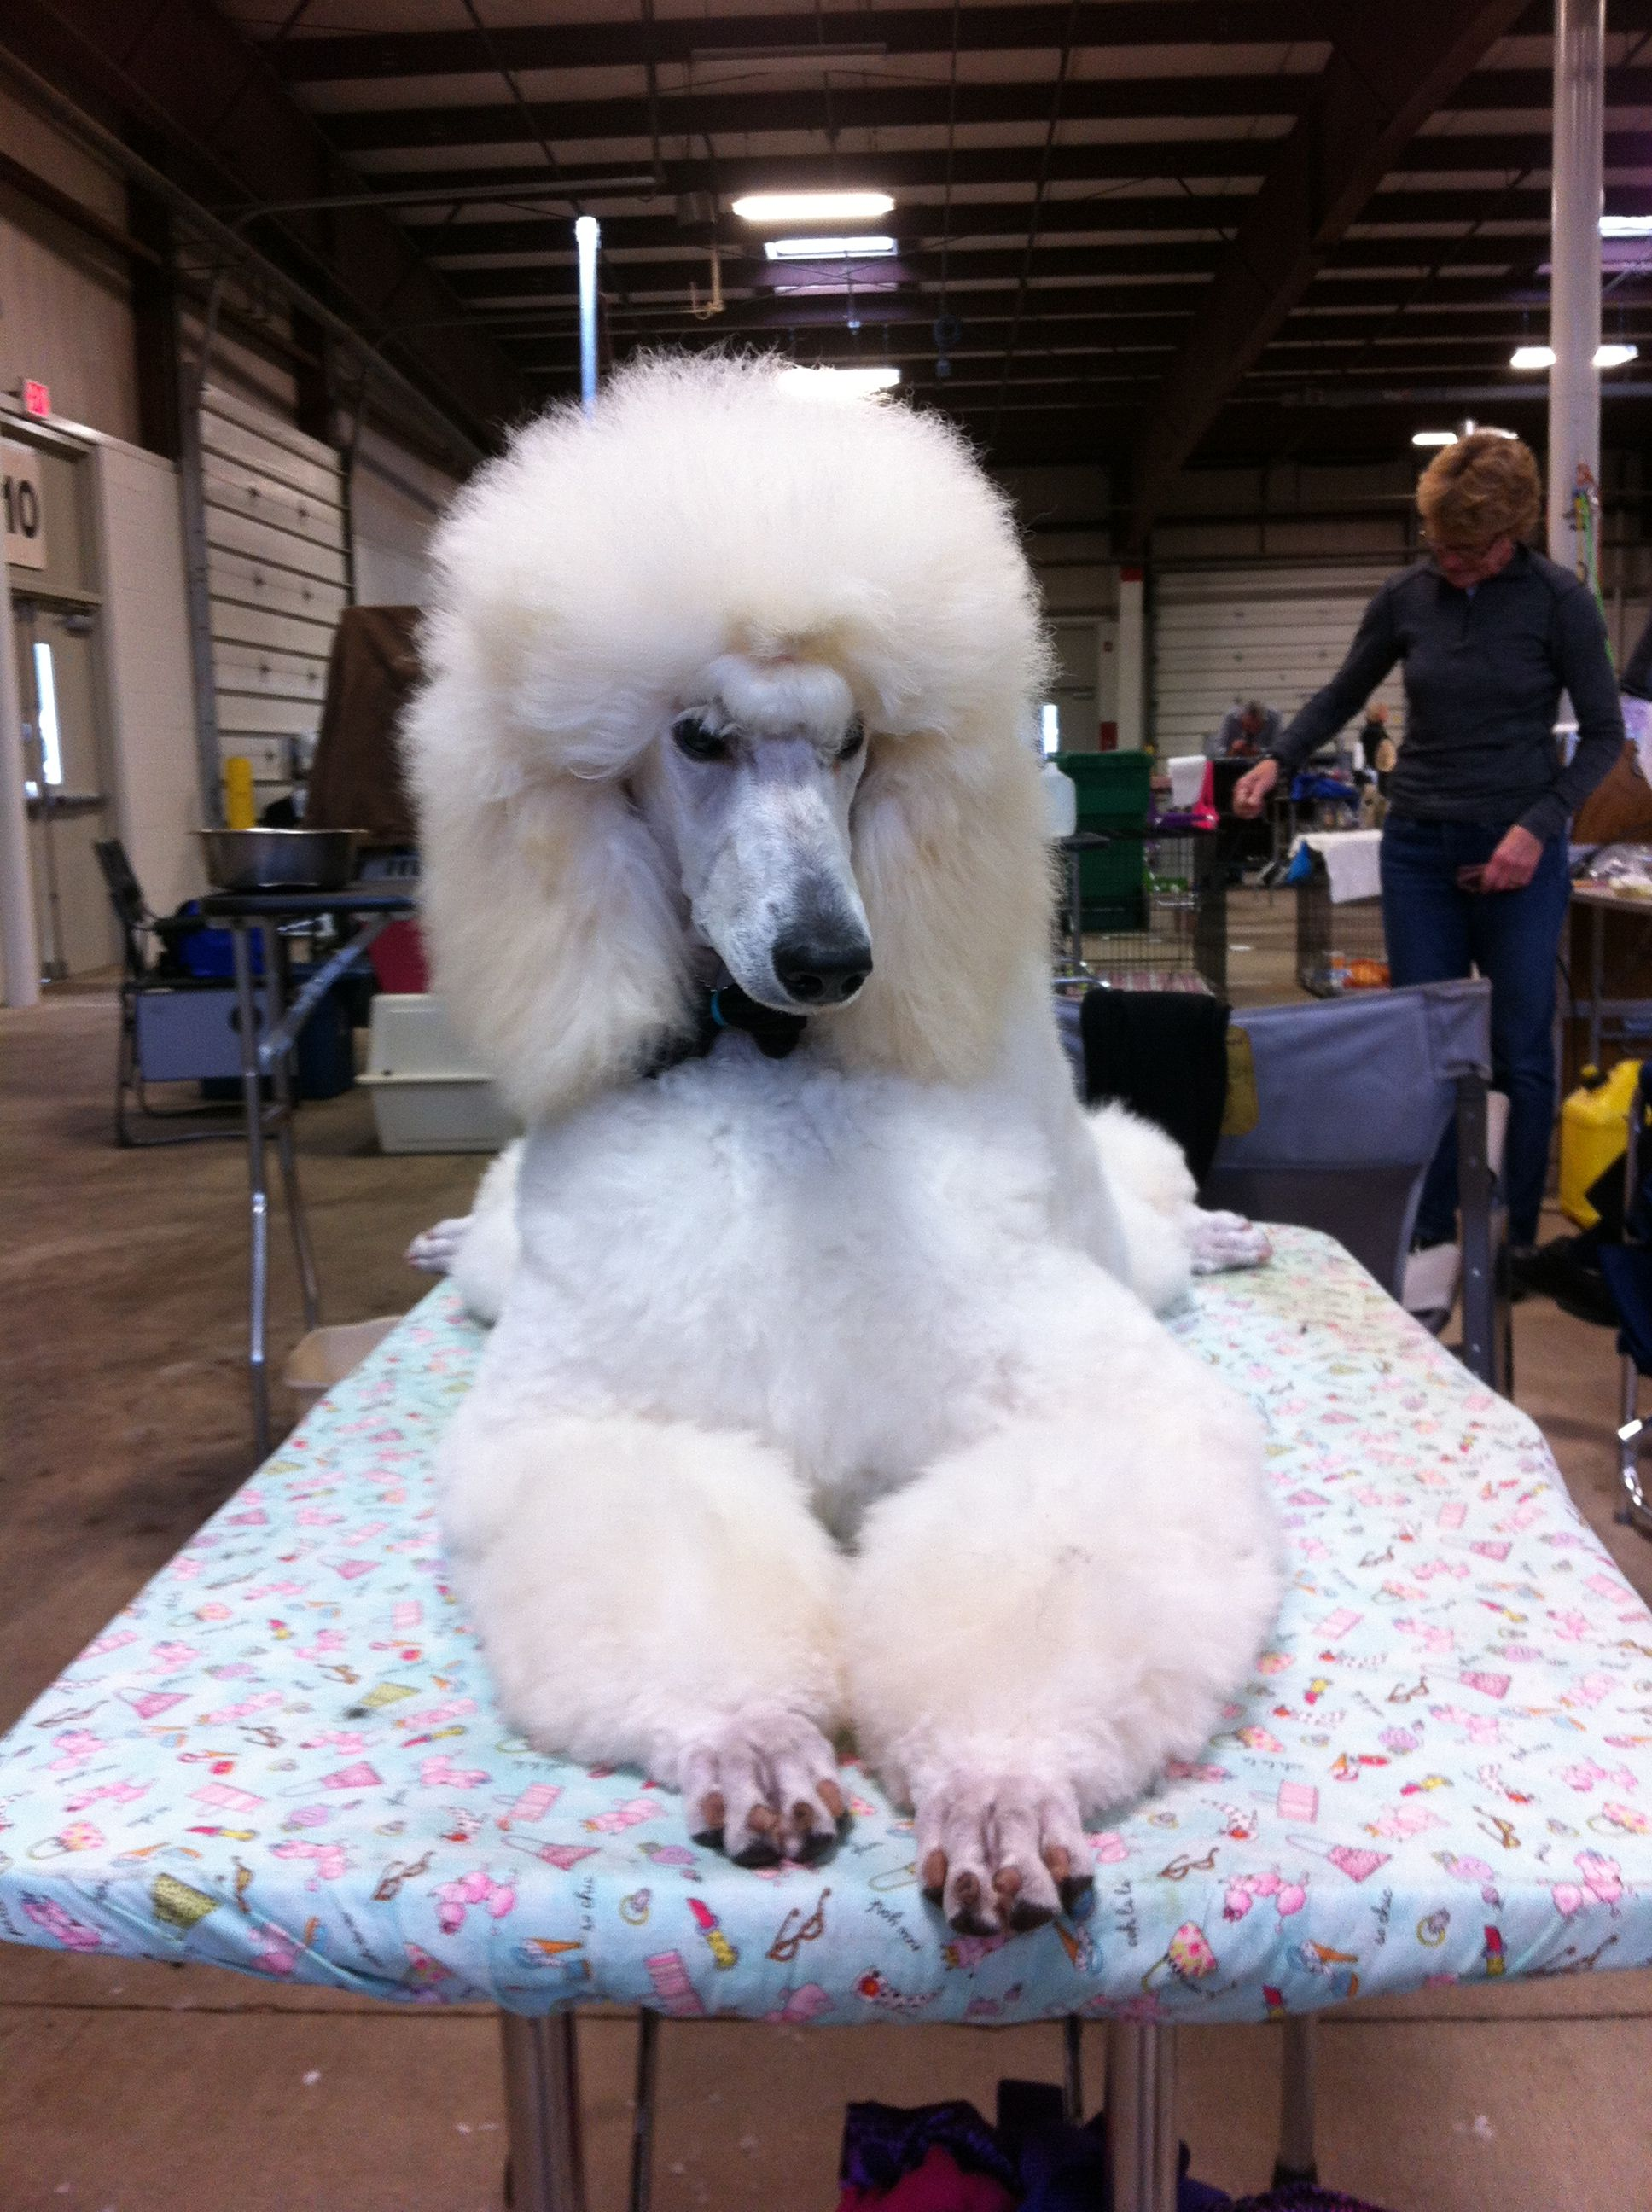 White Standard Poodle Glee Getting Ready For Show Poodle Dog